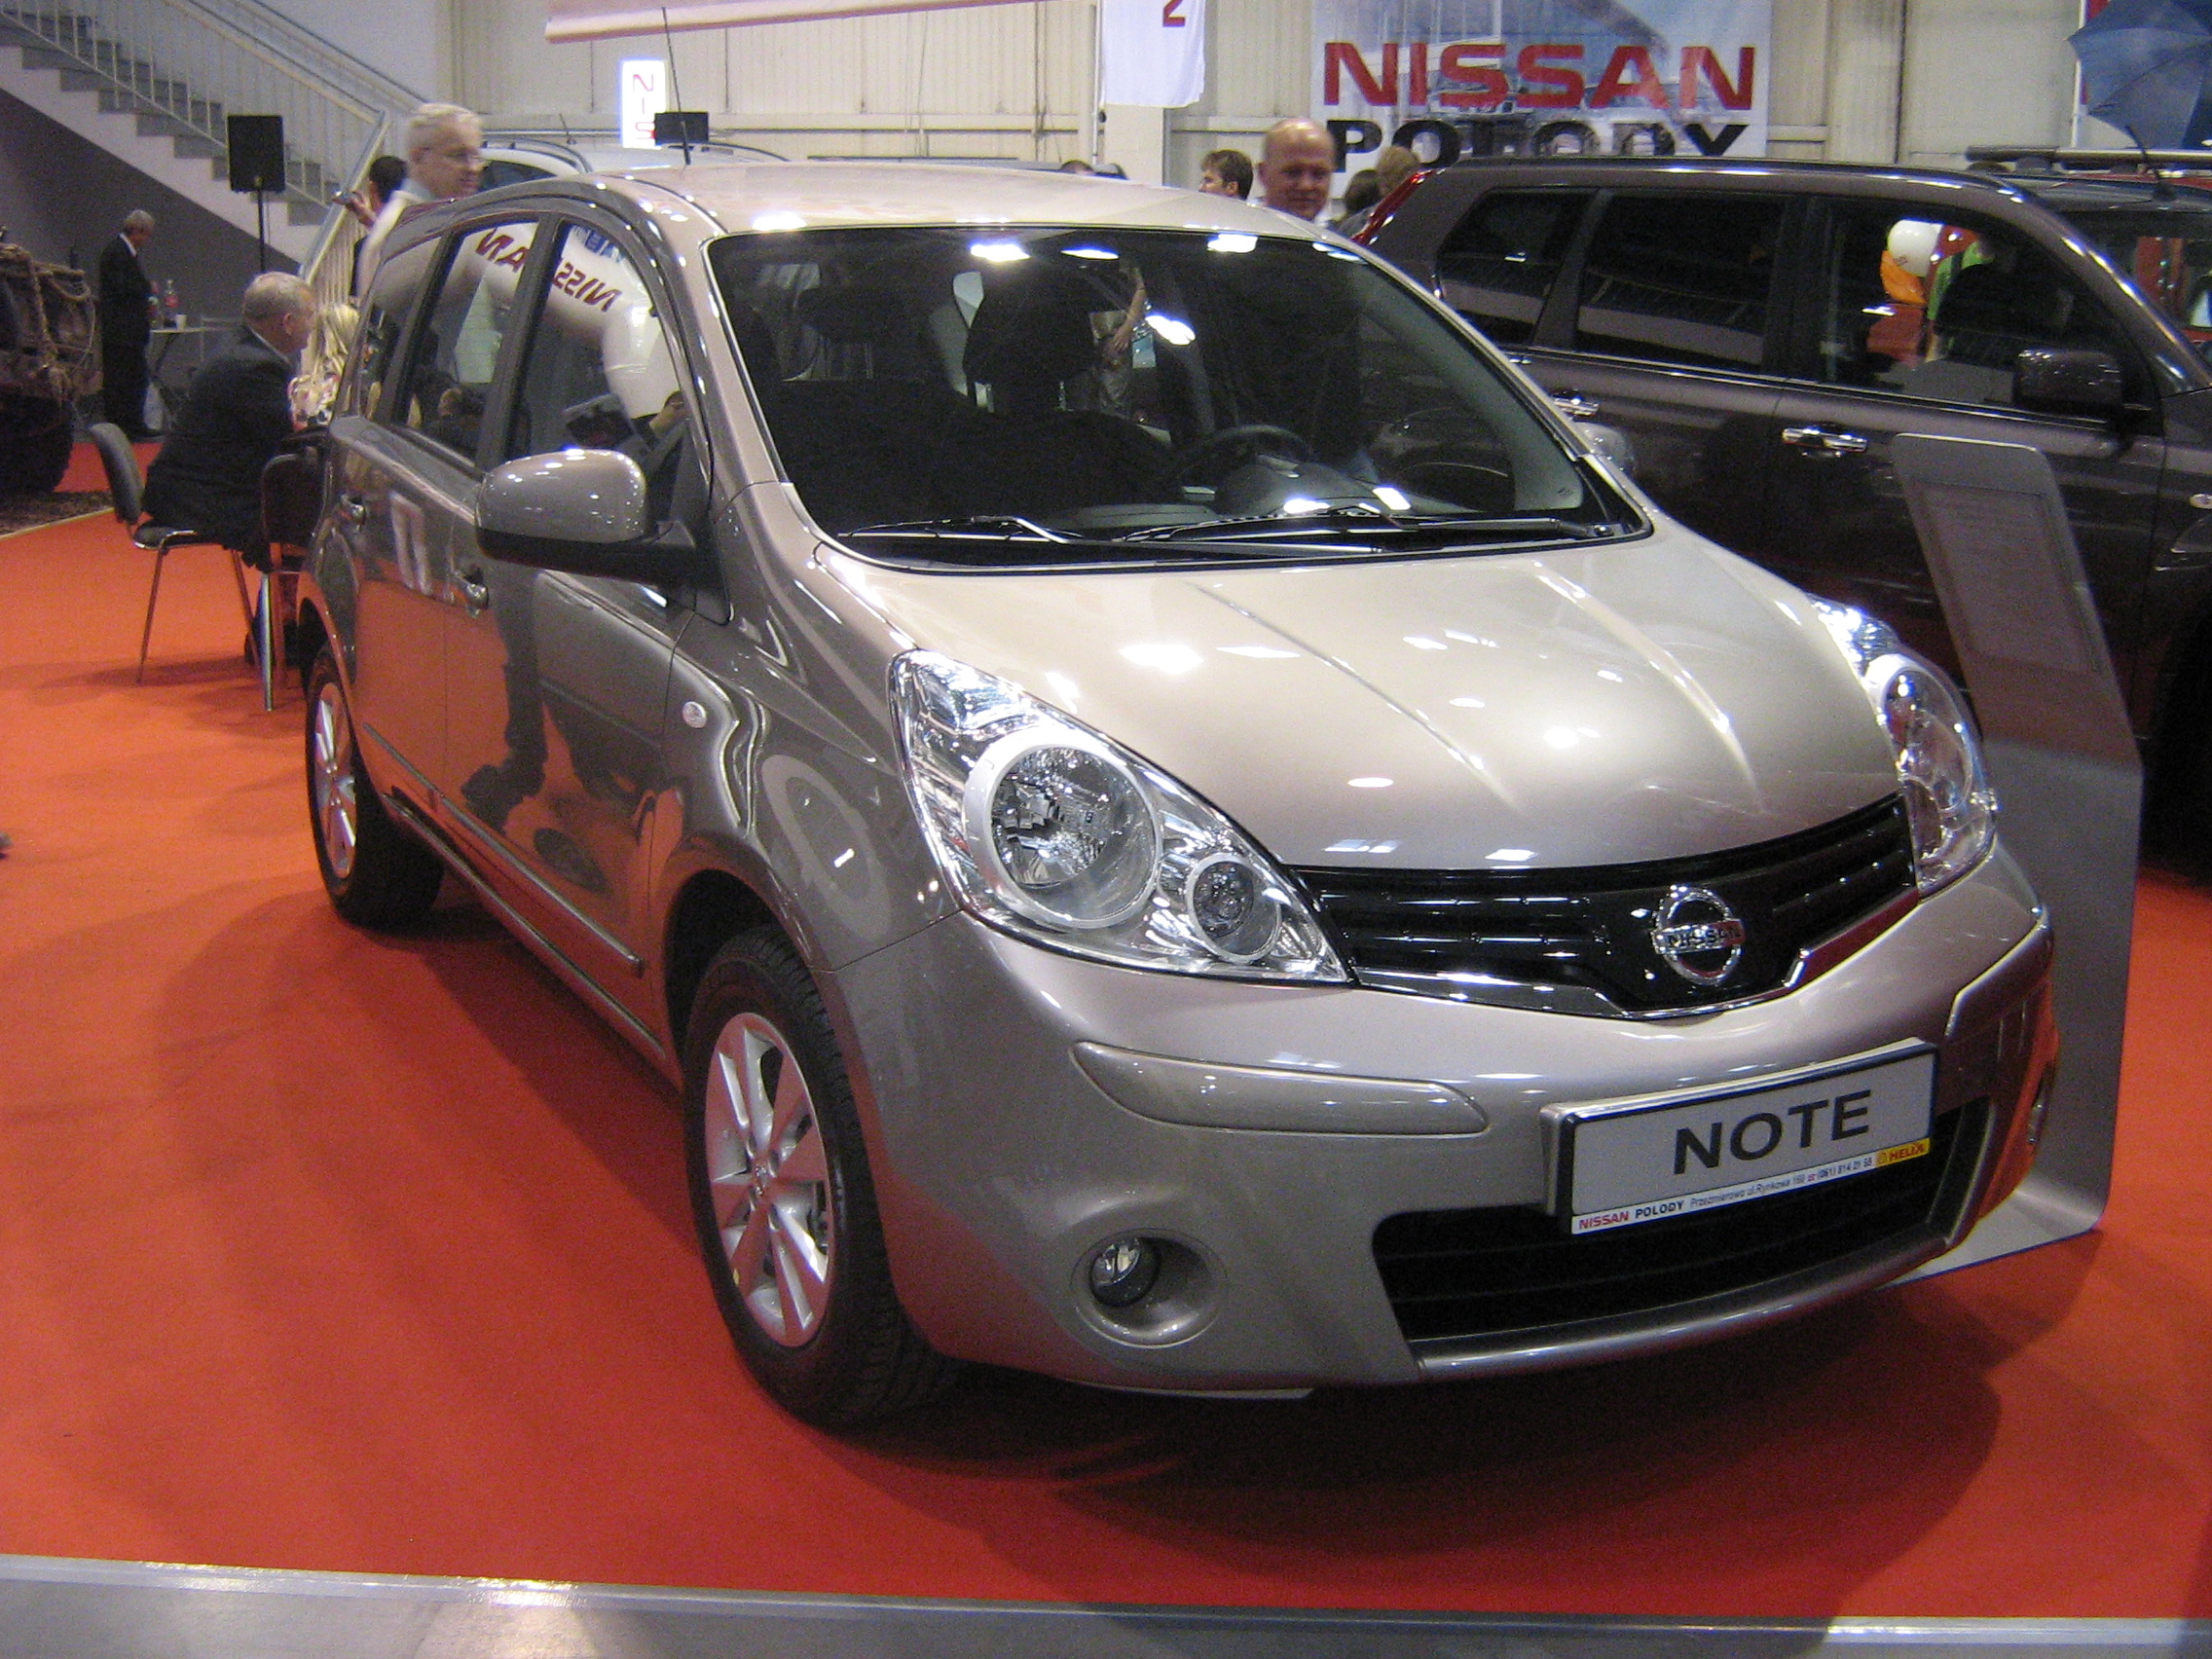 Nissan Note 2009 photo - 3